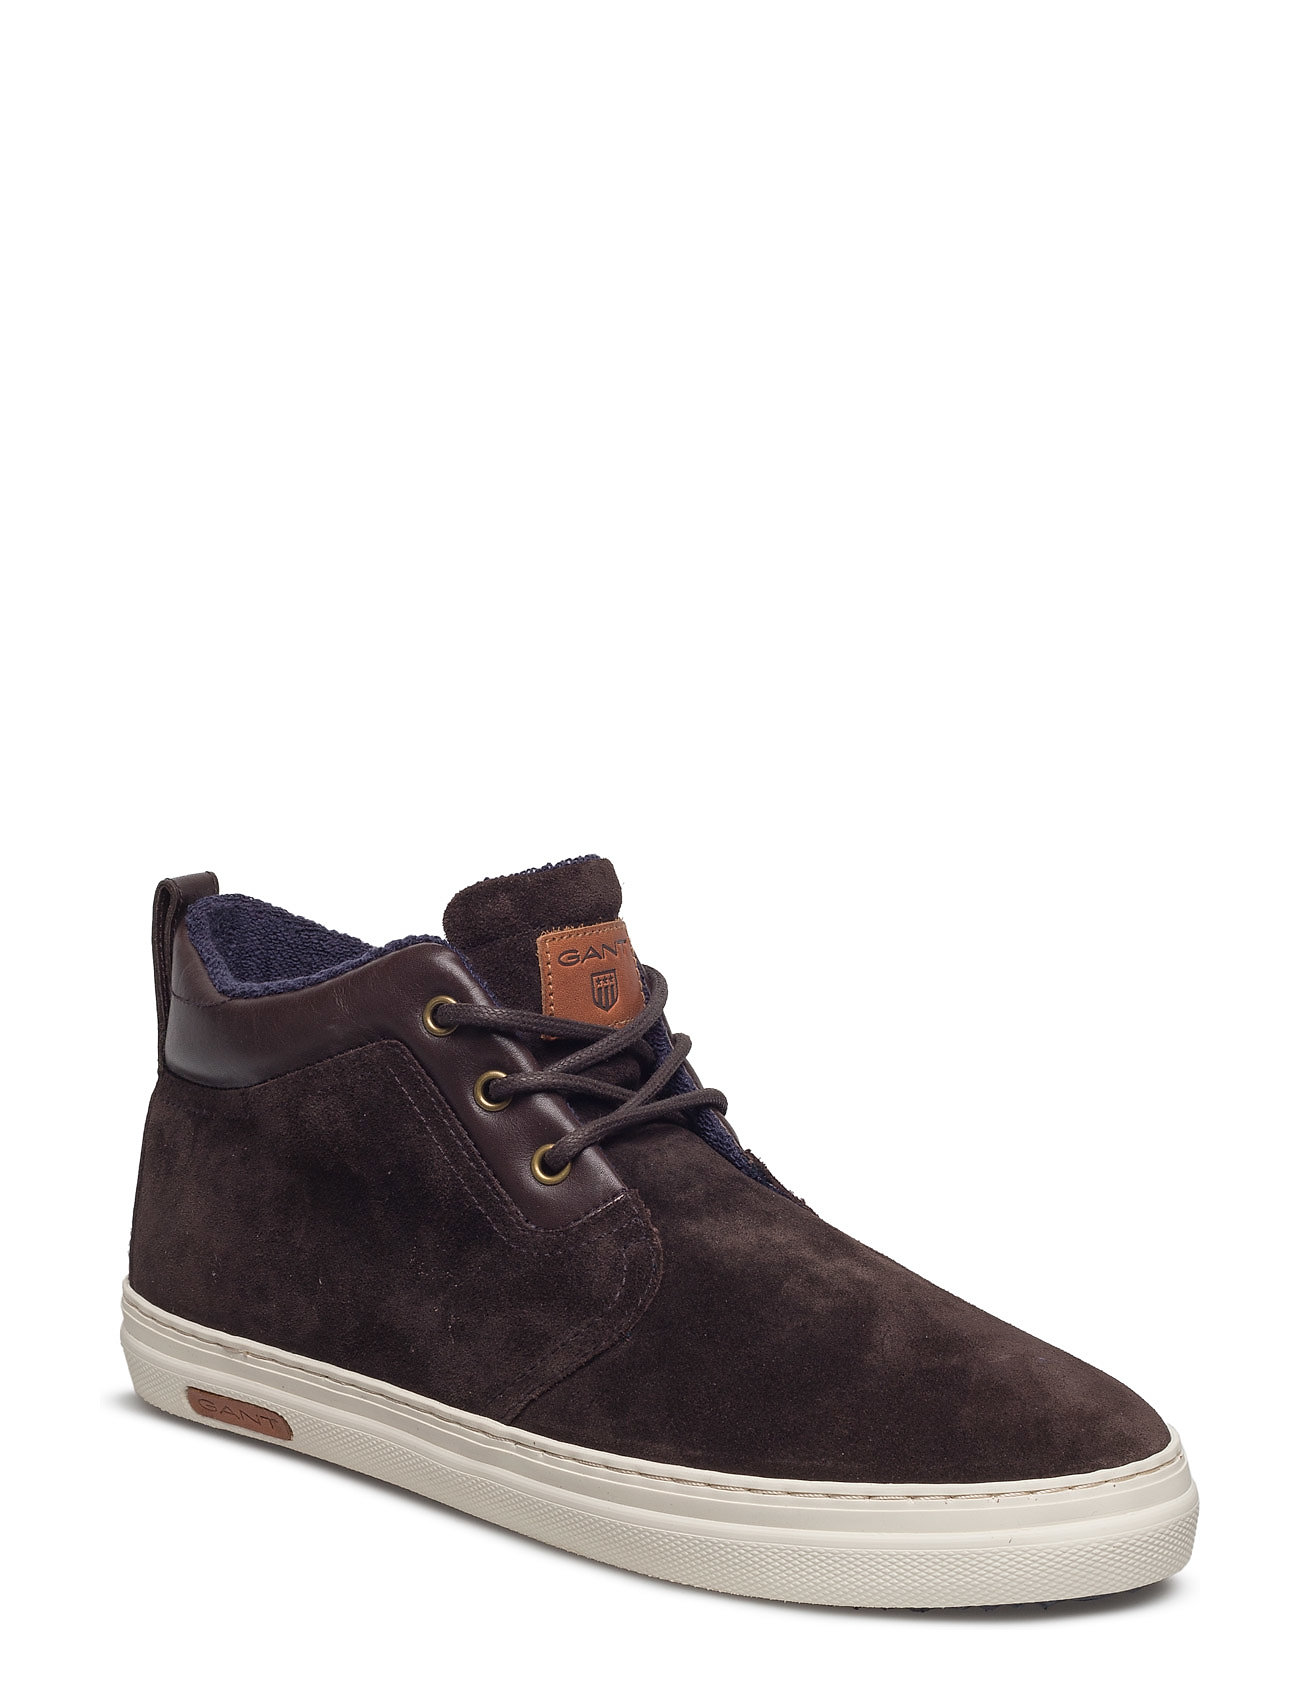 - Marvel Mid Lace Boot GANT Shoes